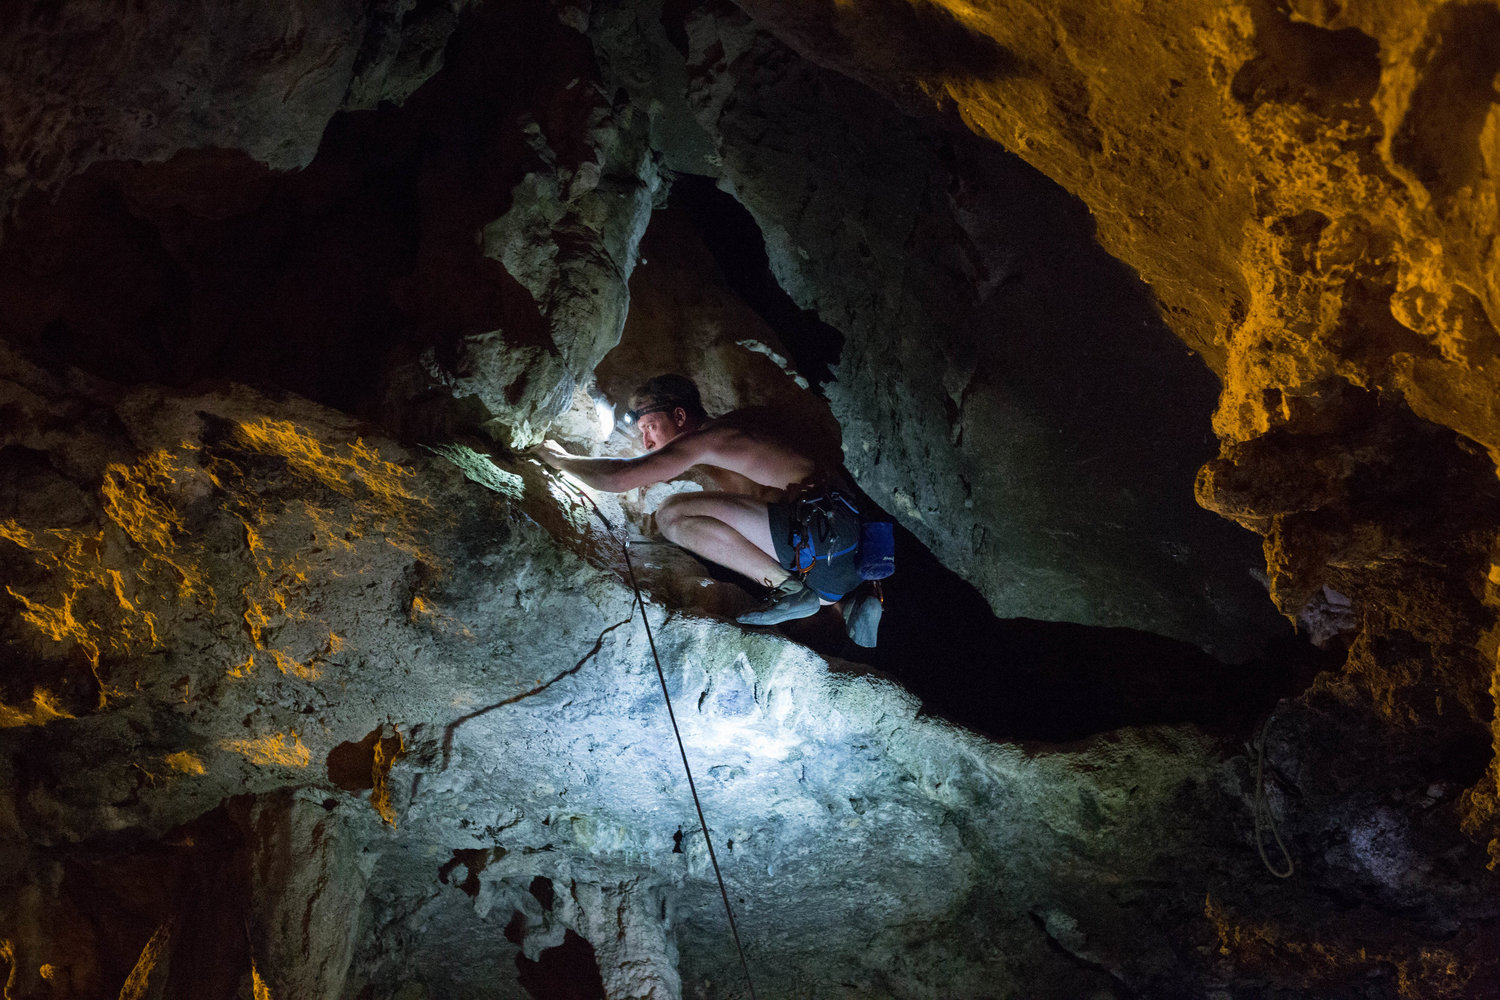 Climbers use headlamps to guide their way across narrow ledges and caves after sundown on Tonsai Beach in Thailand. March 2017.